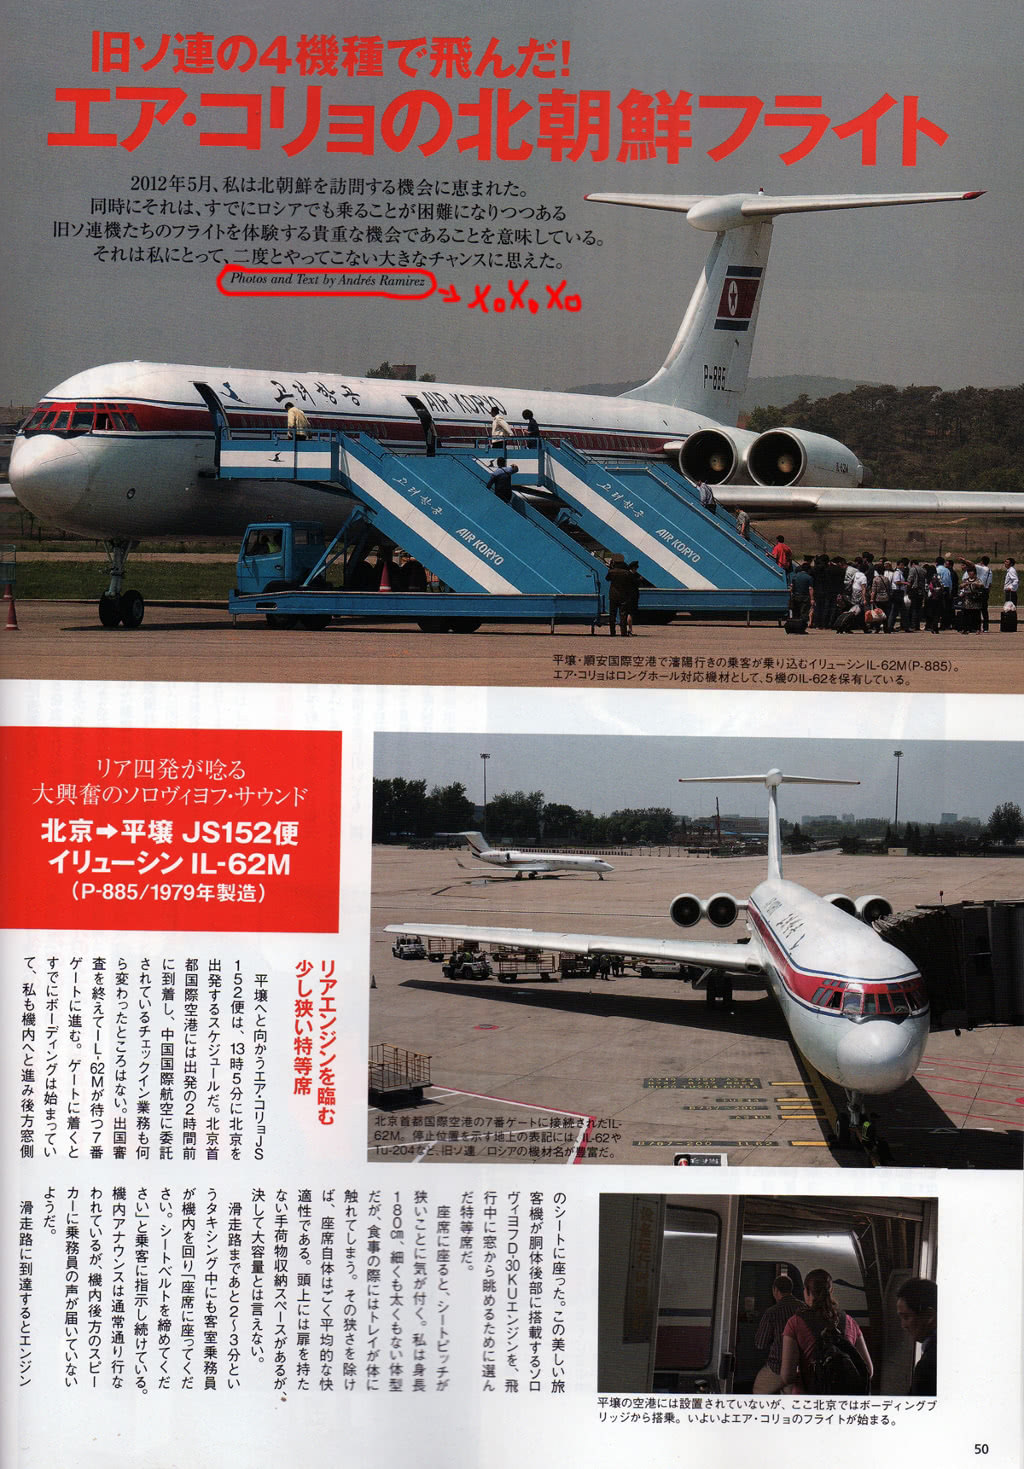 First page of the article I made for a japanese Aviation magazine about this trip. See my name surrounded by soft and artistic mouse brush strokes in paint.  I hope it was properly translated!